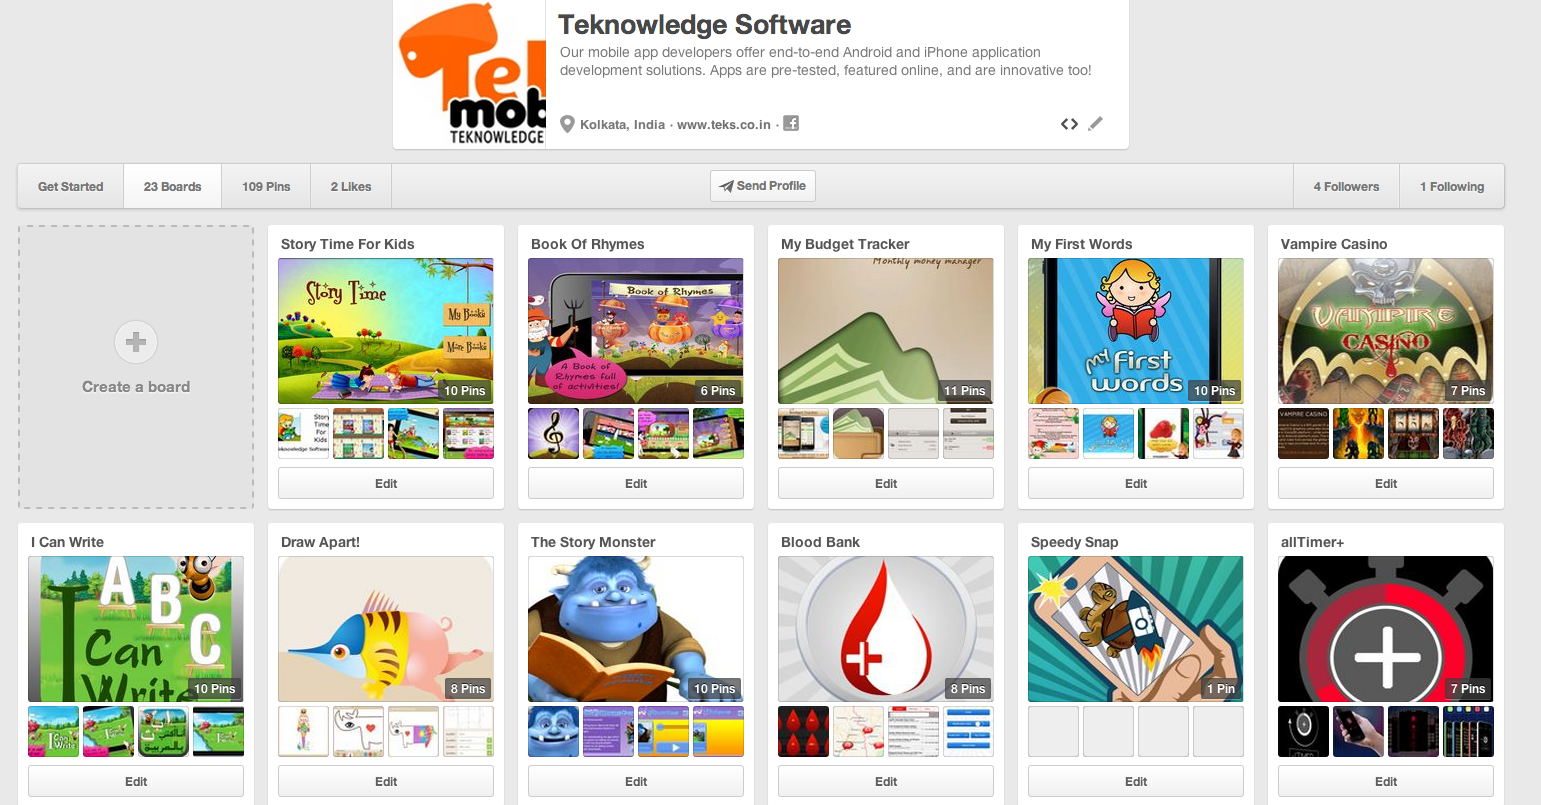 Teknowledge on Pinterest